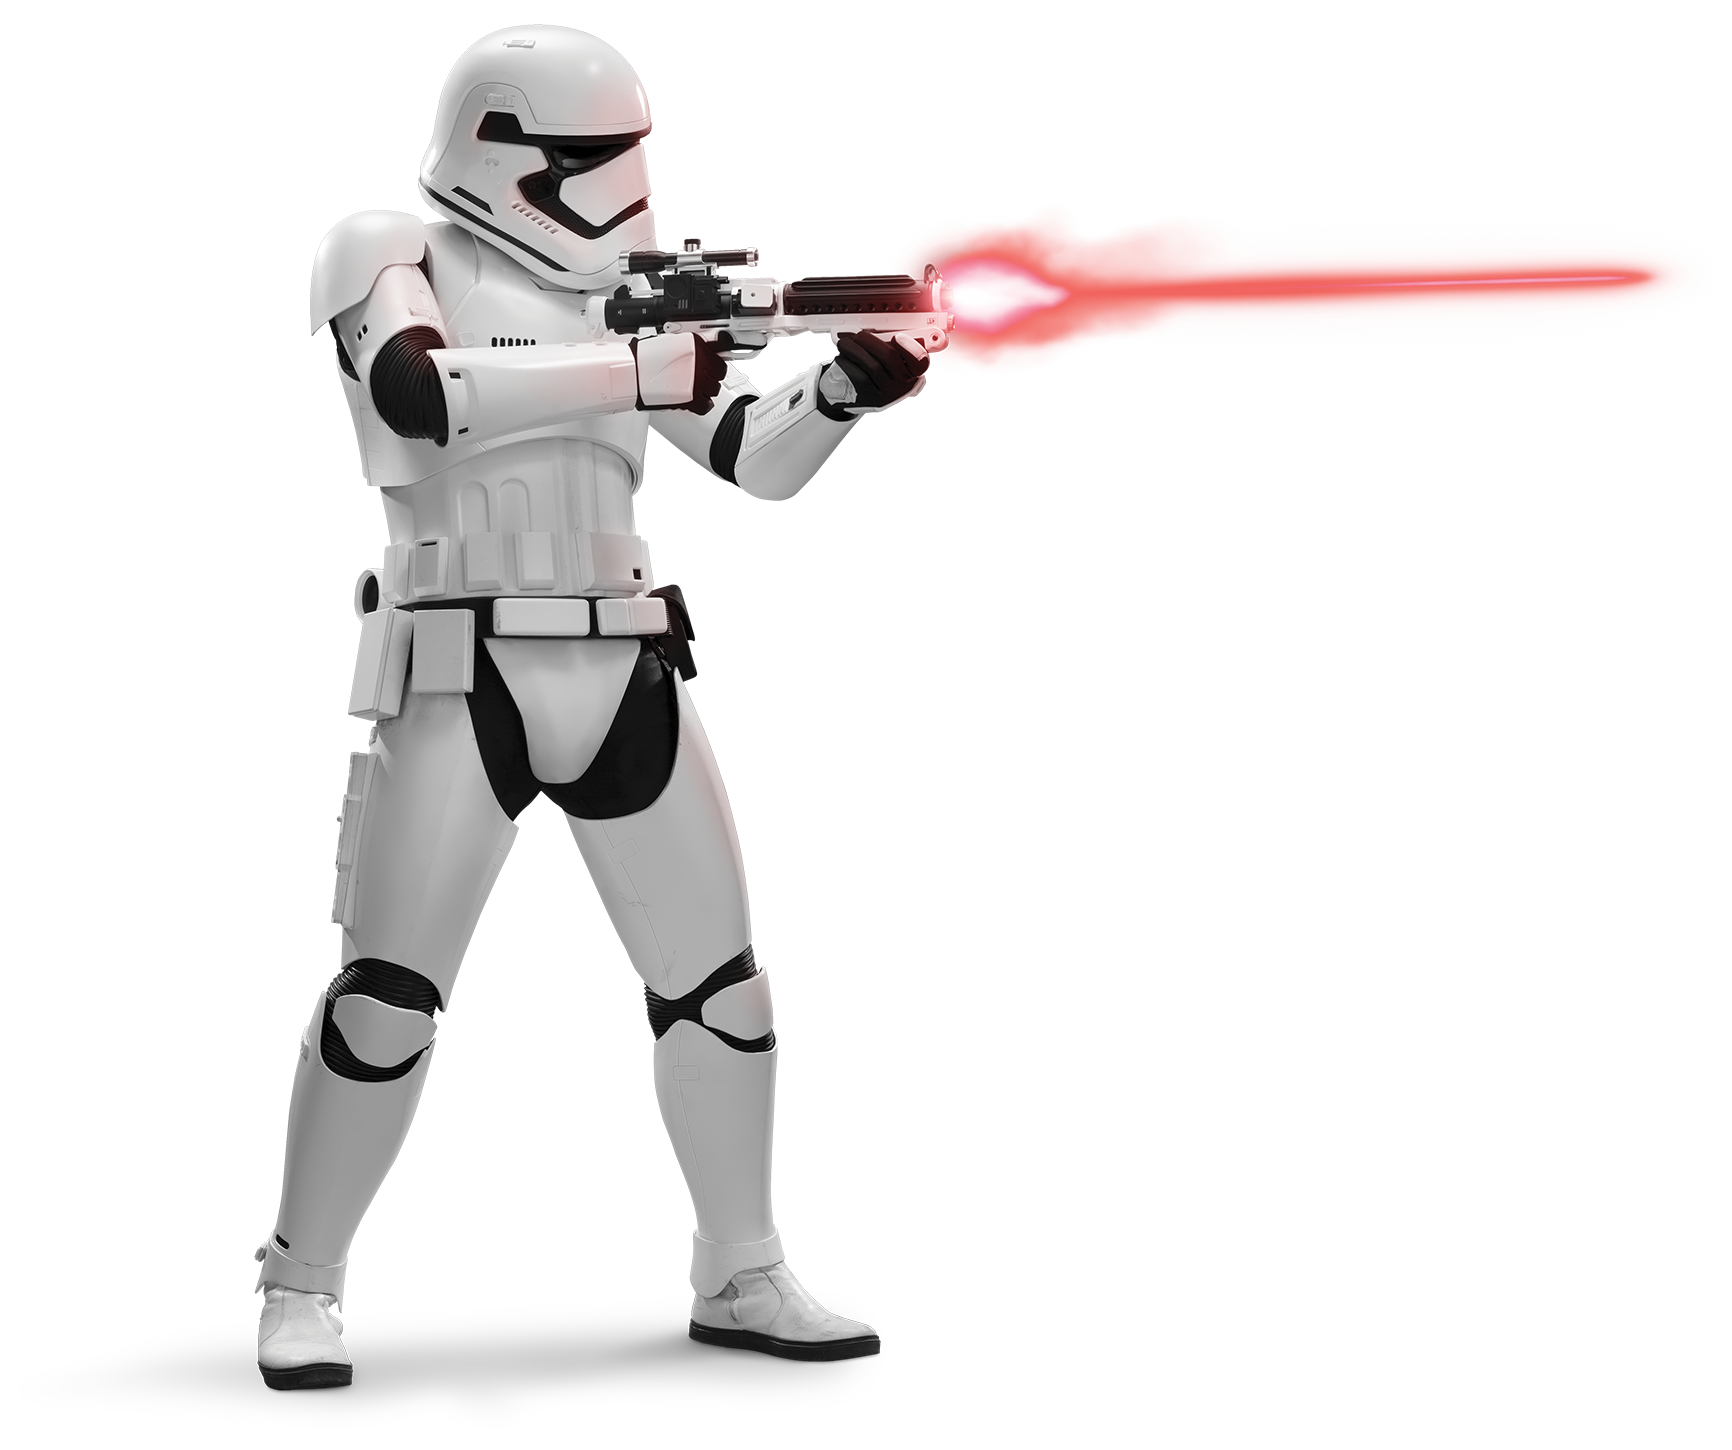 clipart free Png image purepng free. Stormtrooper transparent